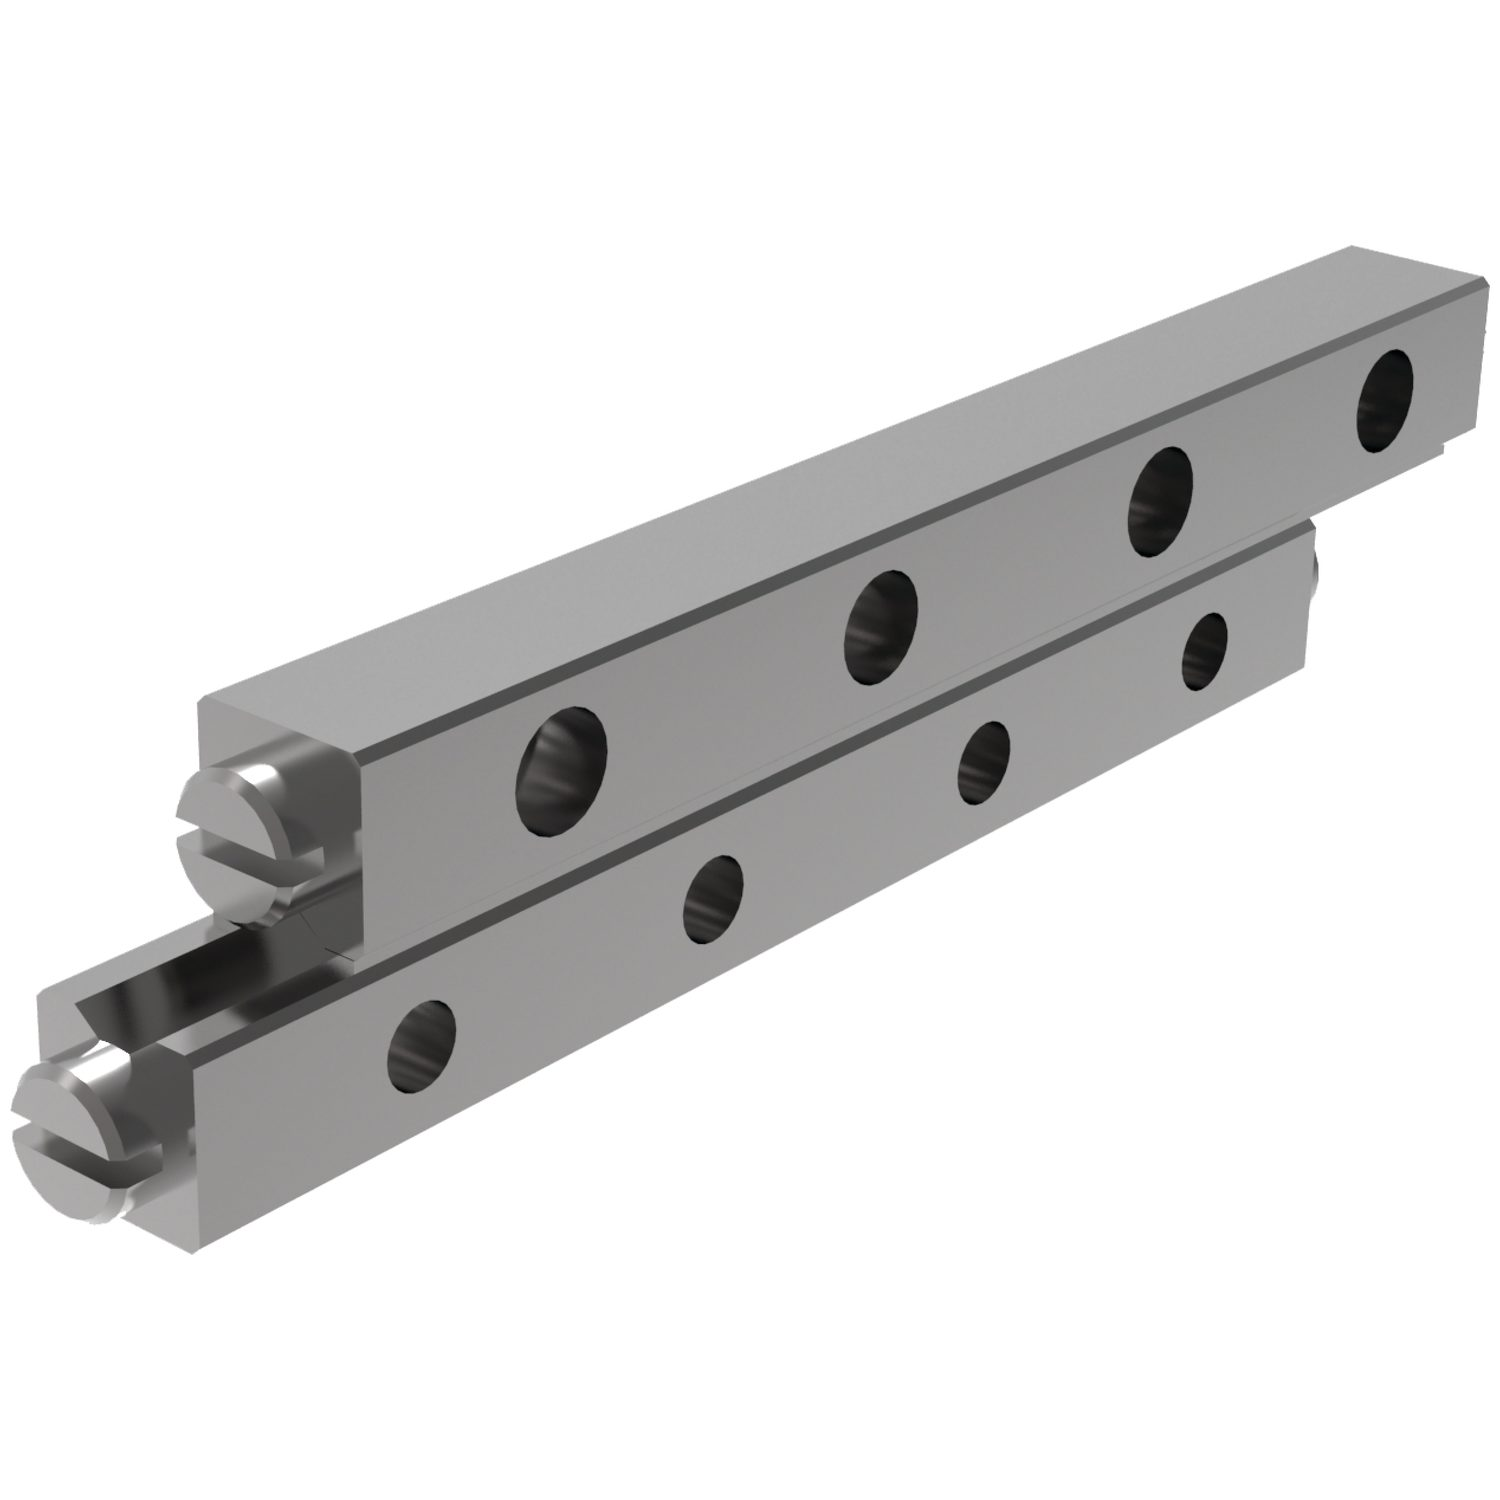 Stainless Crossed Roller Rail Sets